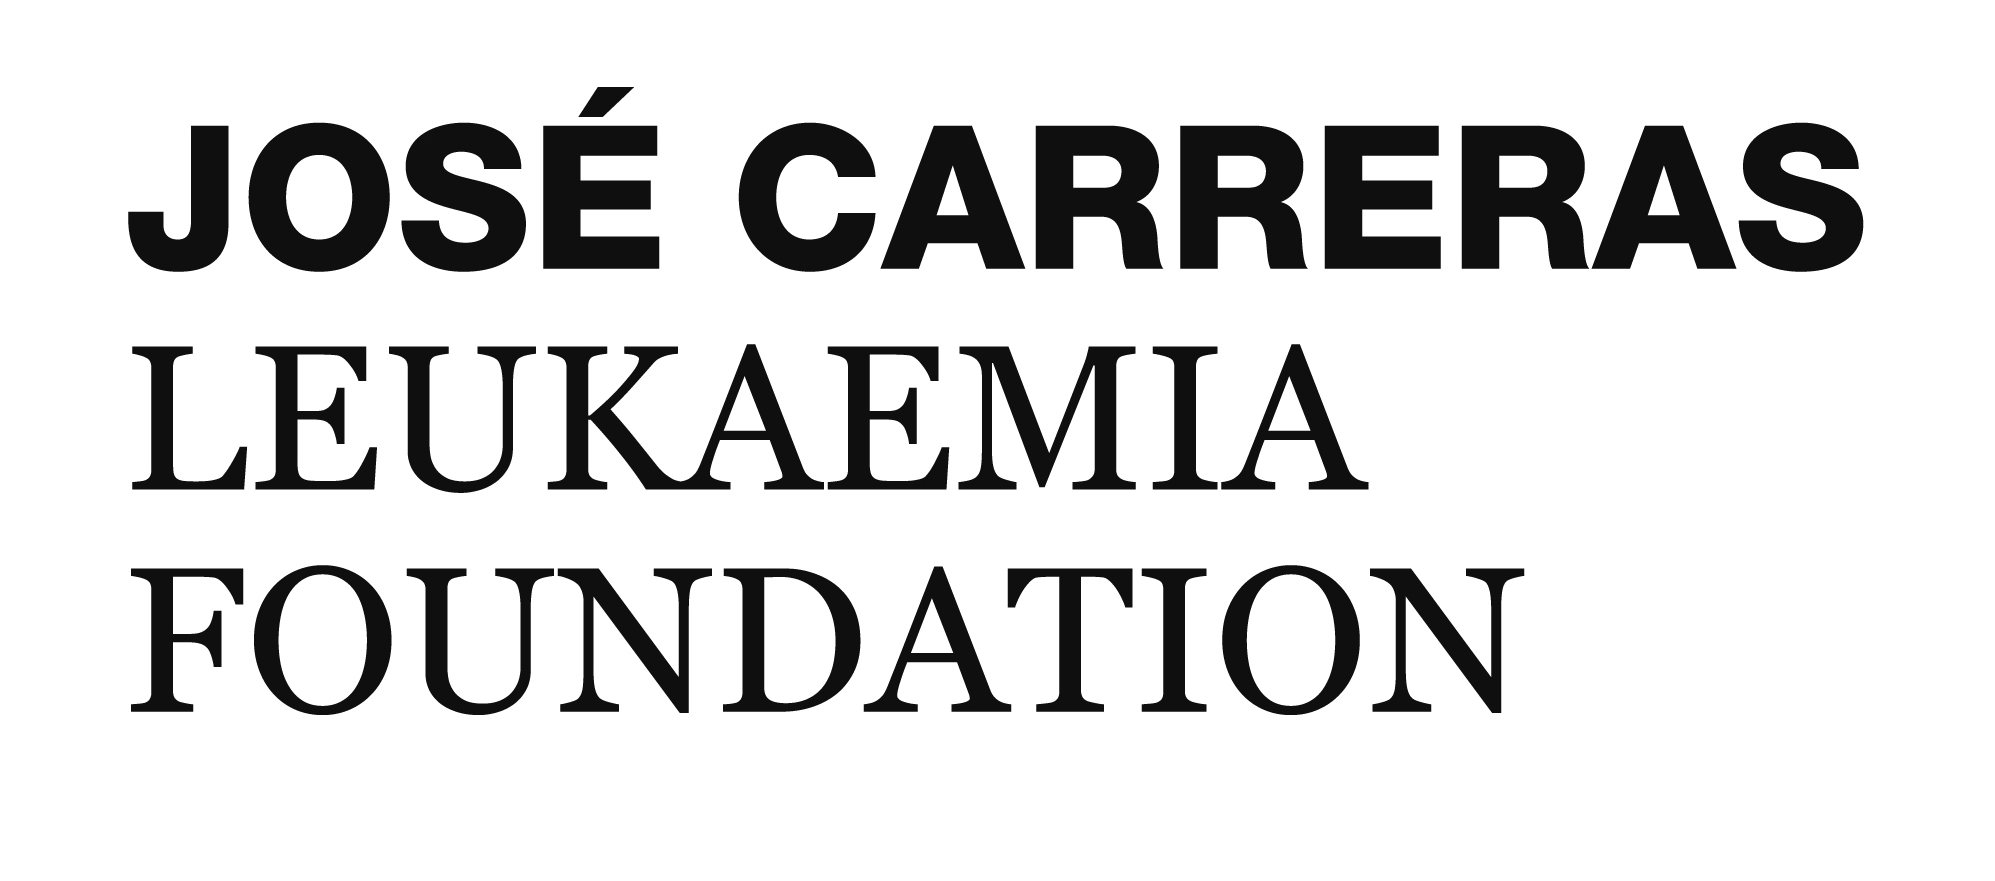 José Carreras Leukaemia Foundation